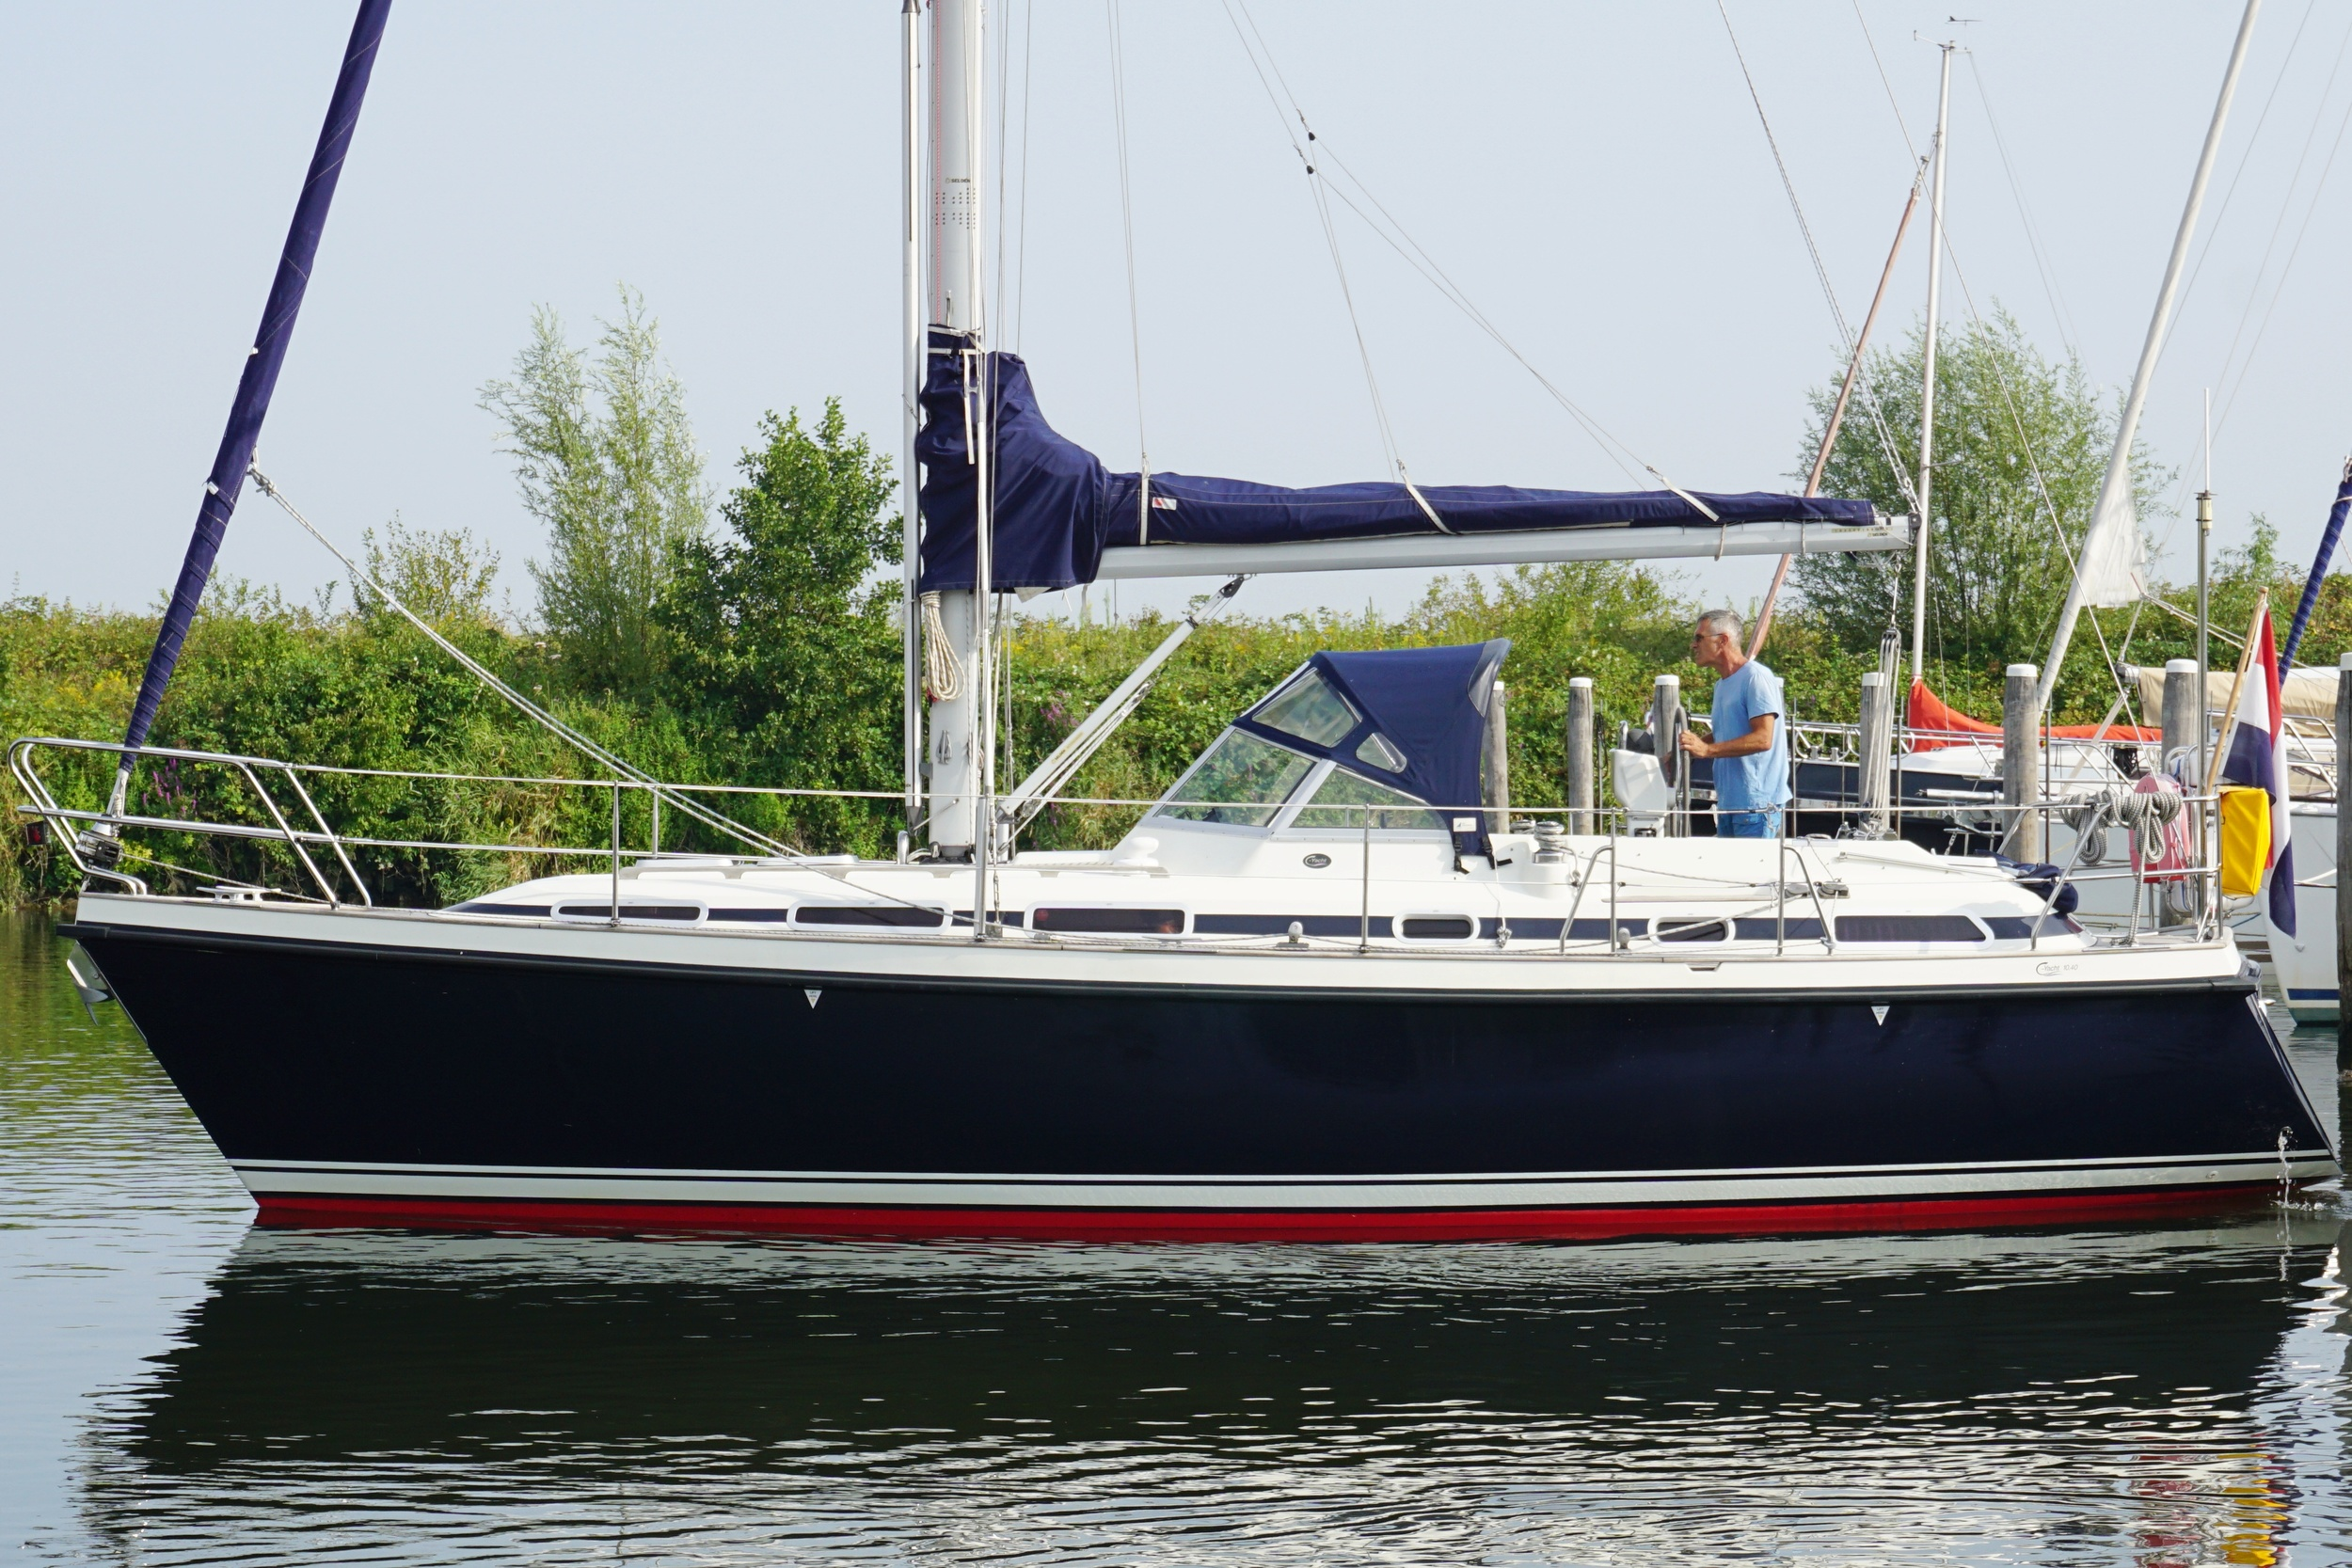 c-yacht 10.40 cyacht 1040 c yacht for sale in netherlands for 99,500 85,703